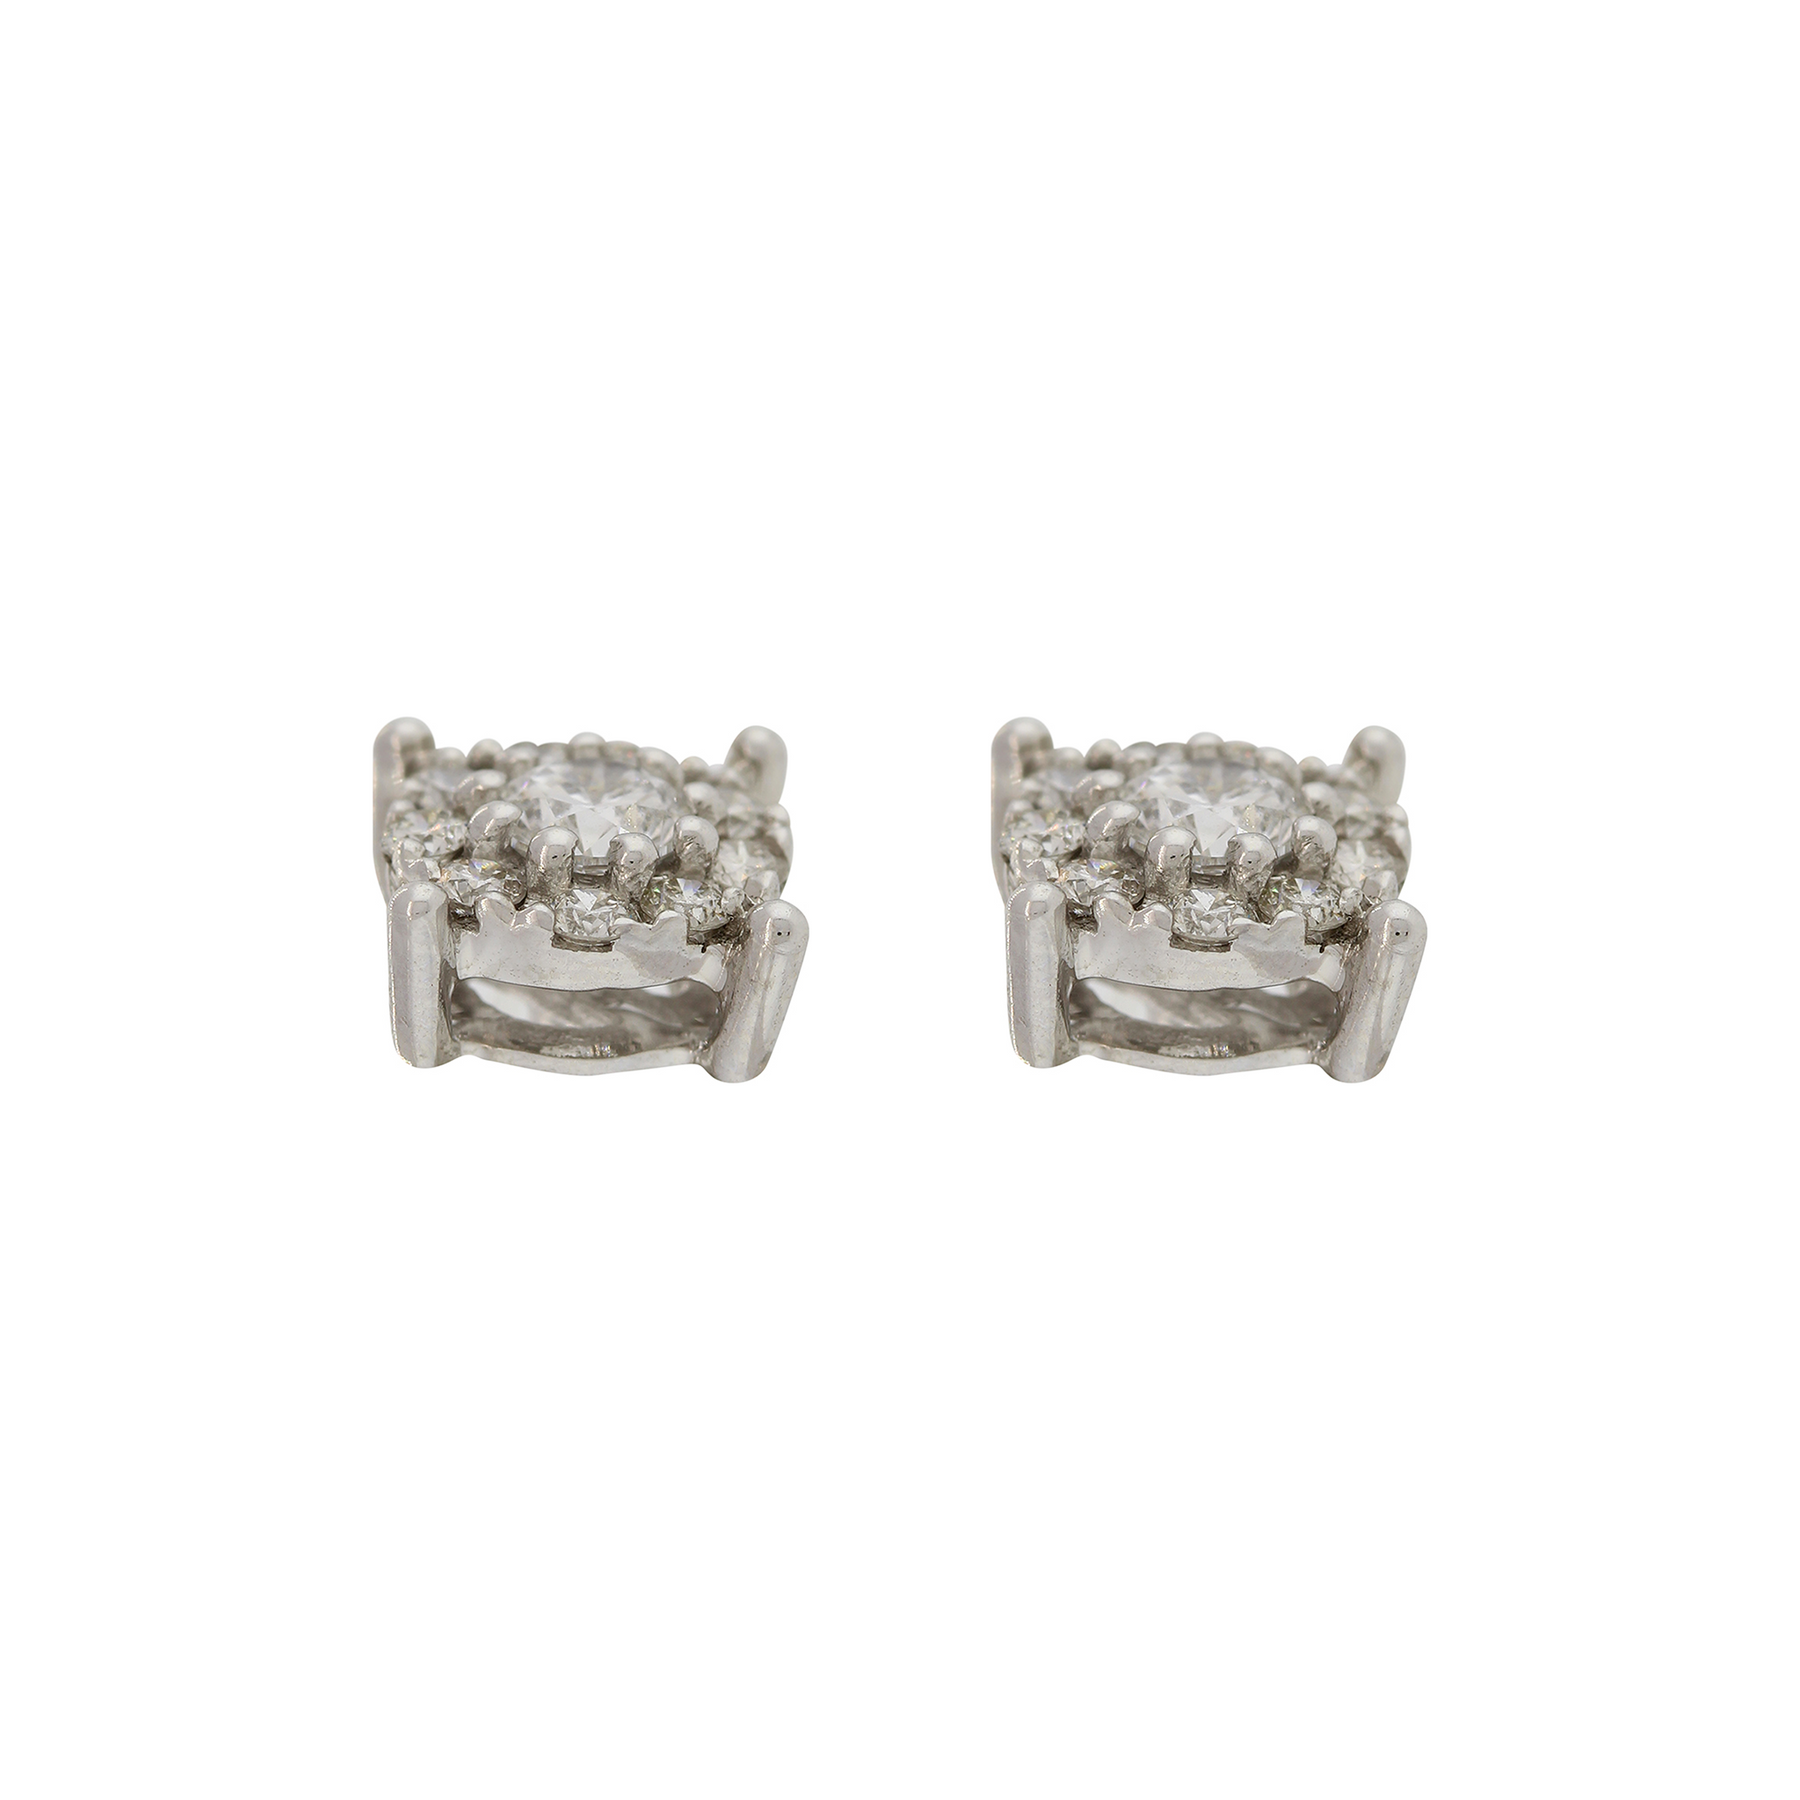 DIAMOND EARRING TOPS WITH CENTER SOLITAIRE – Andaaz Jewelers